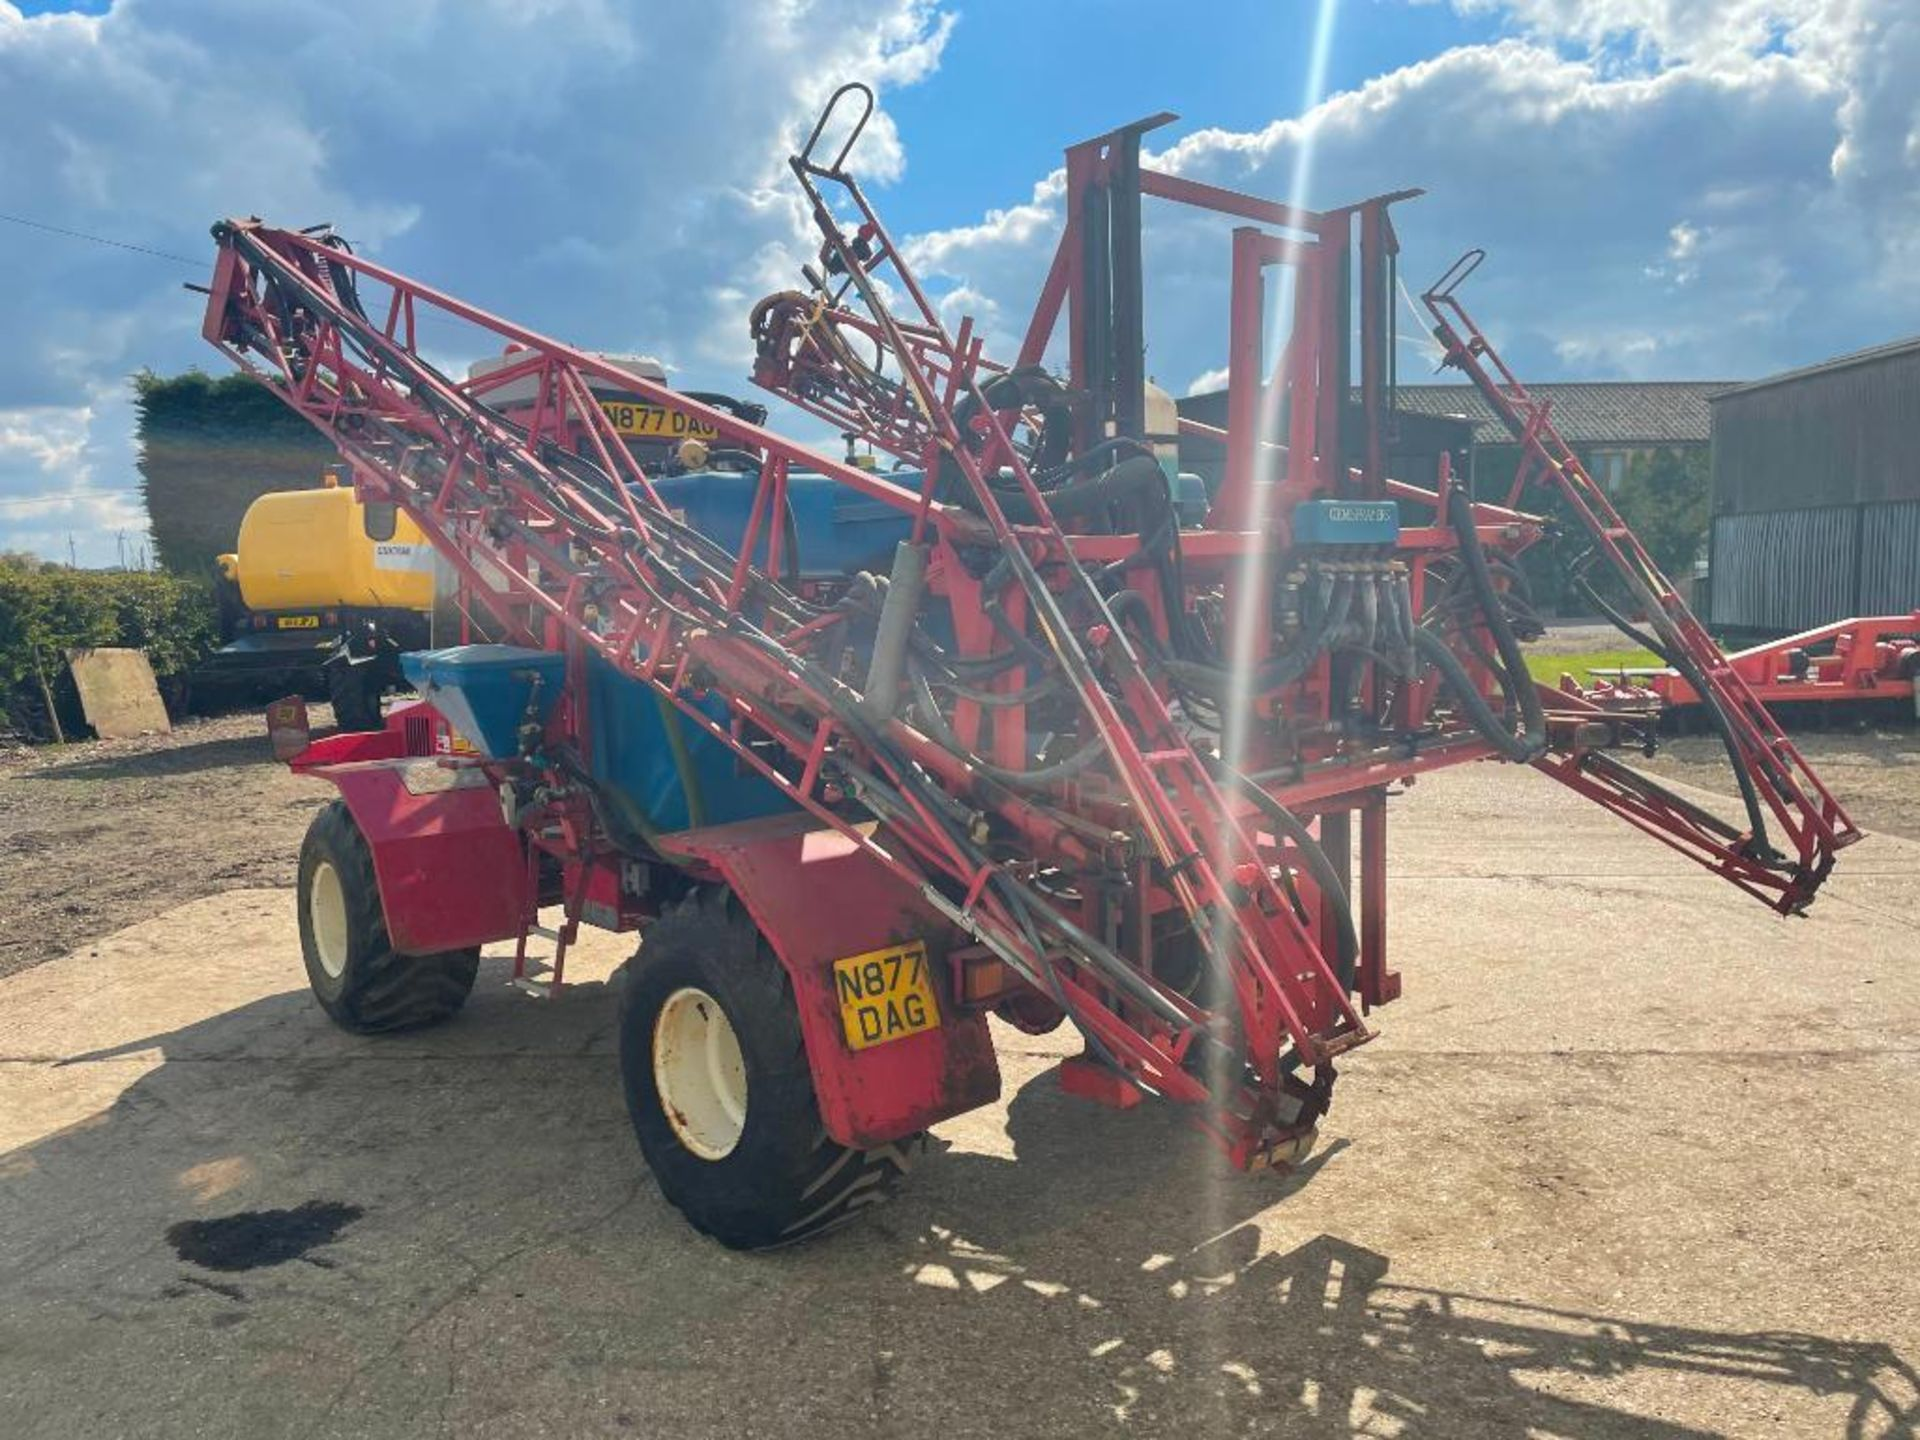 1995 Frazier Agri-Buggy SD with GEM 24m self propelled sprayer, 1500l tank on 38x20.00-16 wheels and - Image 21 of 27